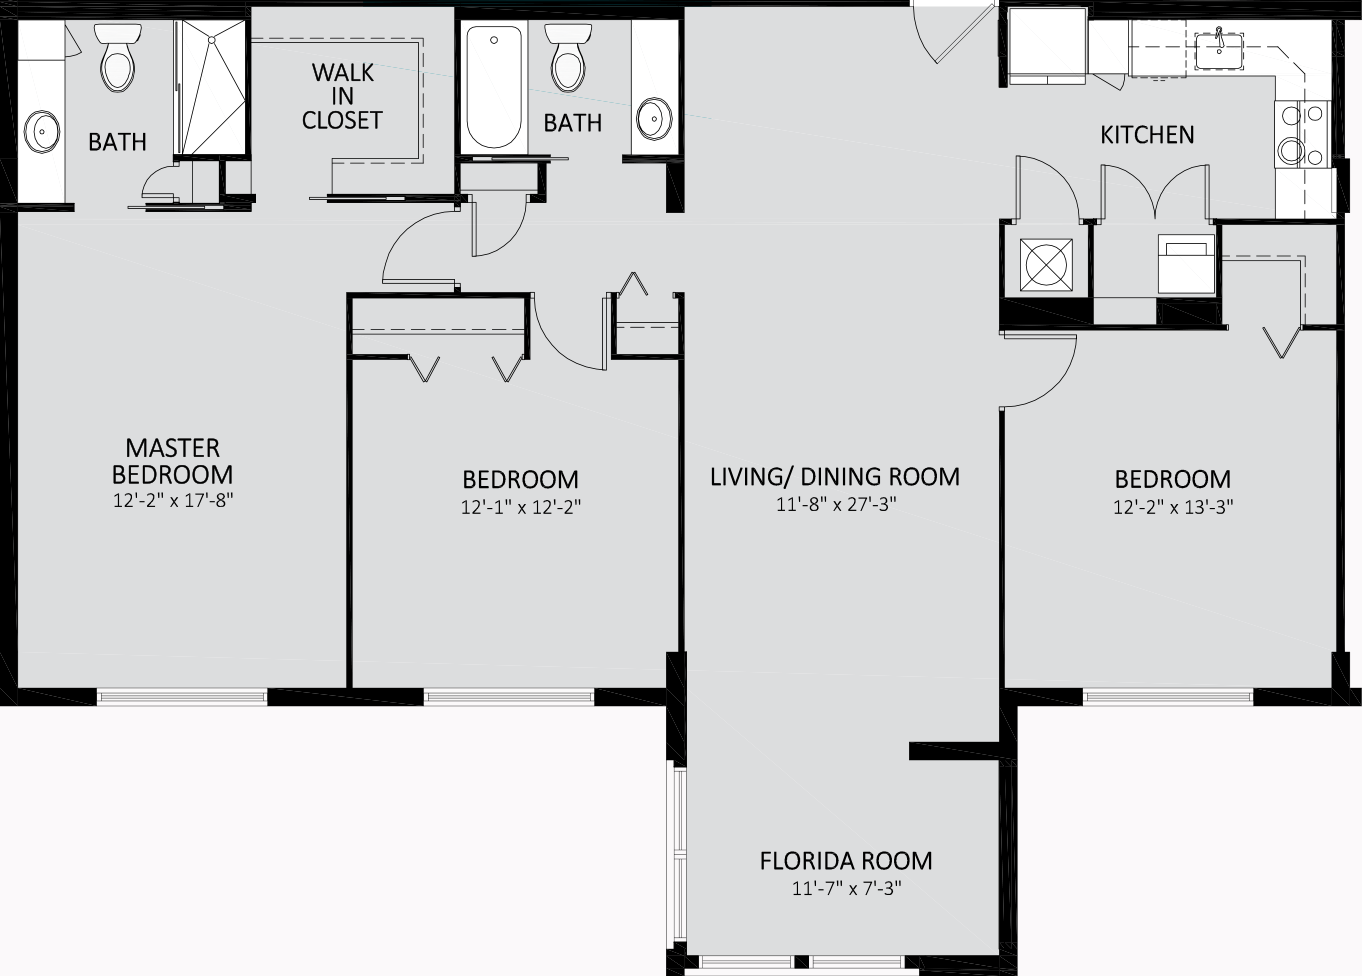 Seashell Traditional Three Bedroom 133 Sq Ft.png